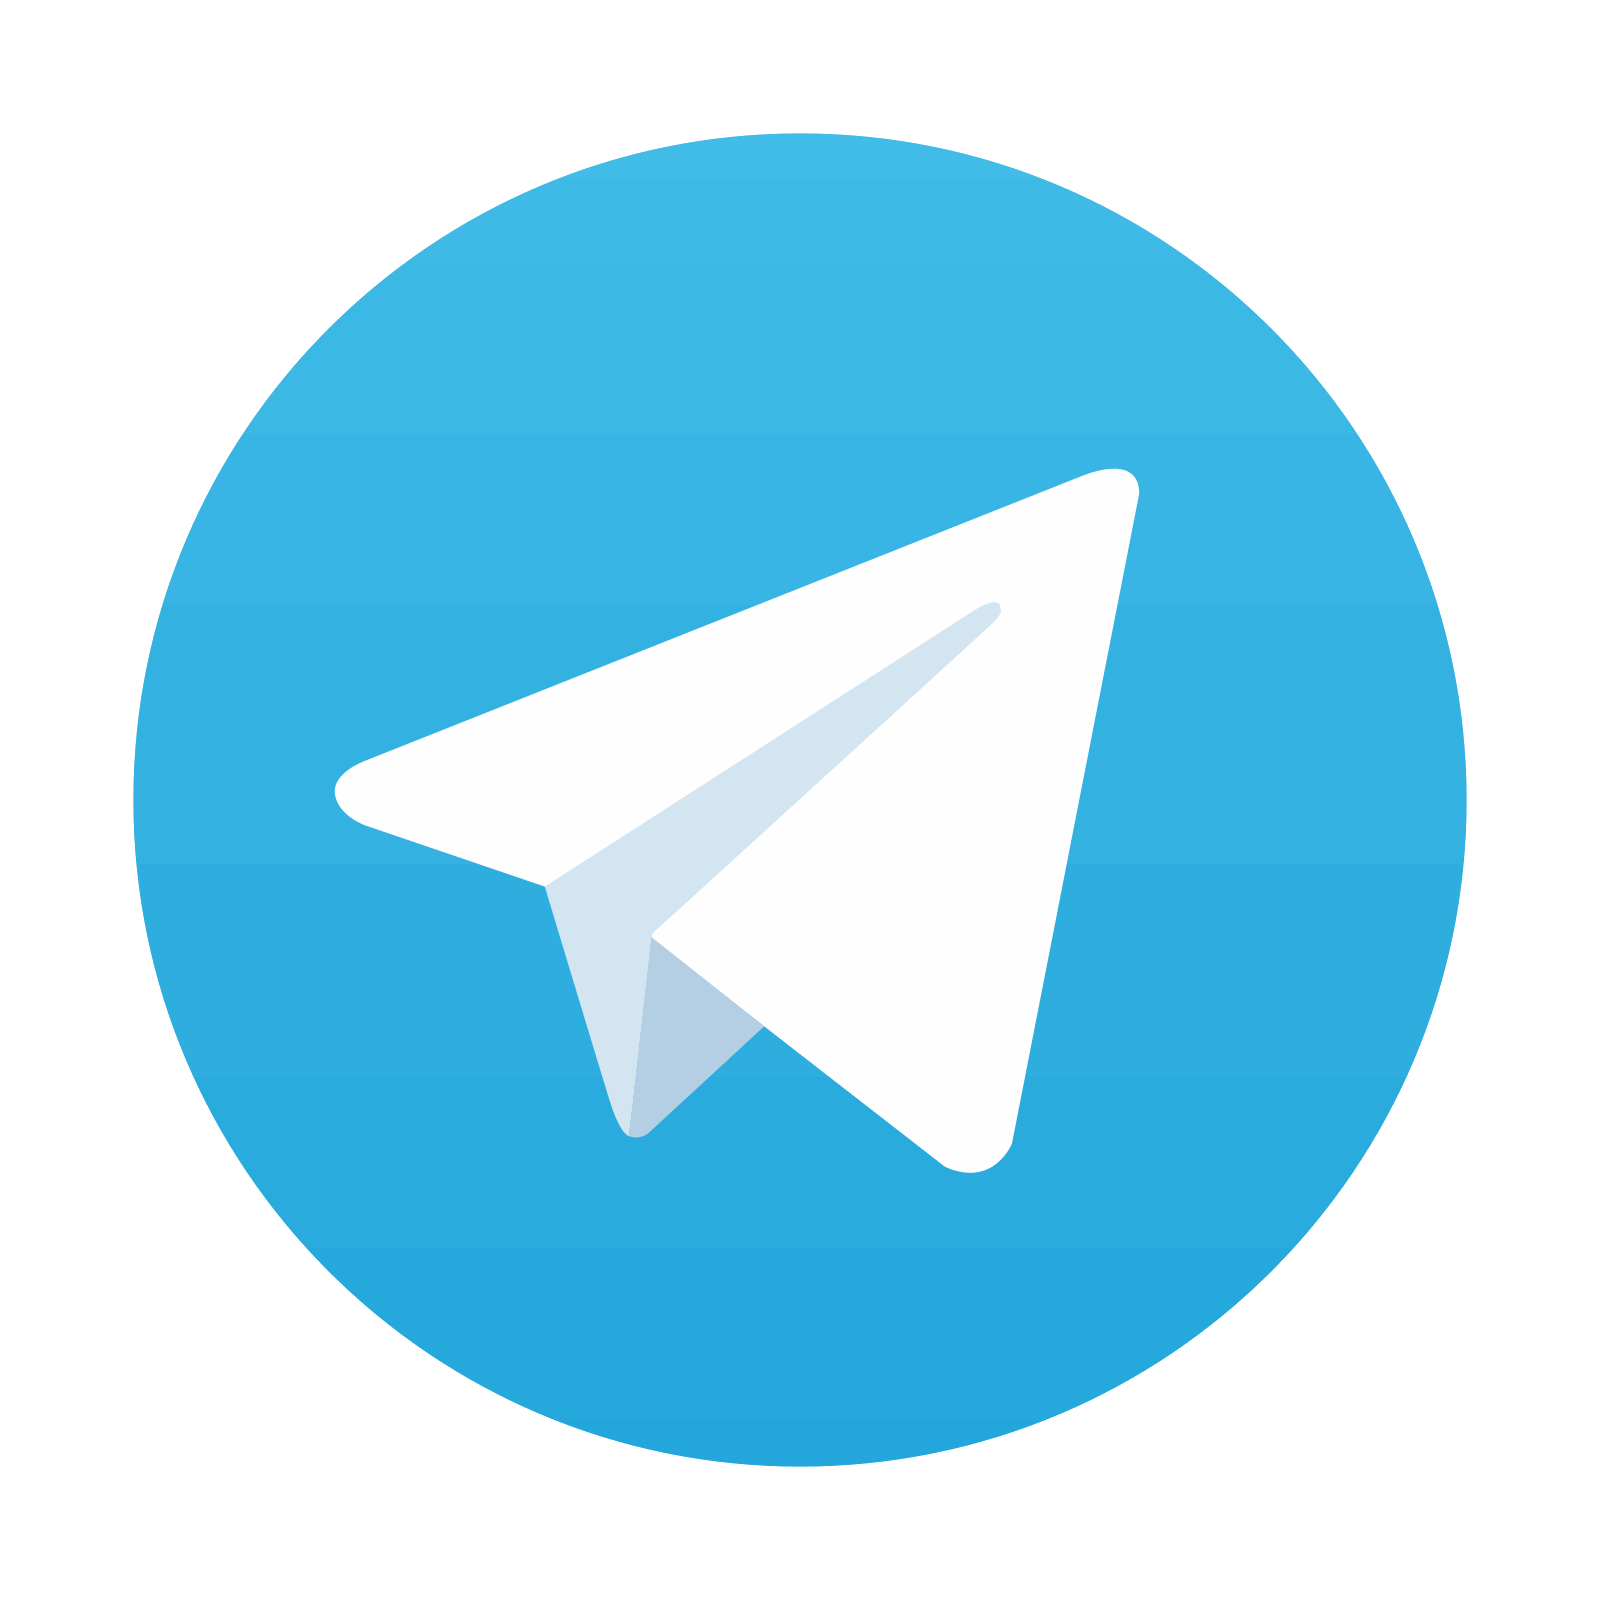 Twitter app icon png. Telegram free download and